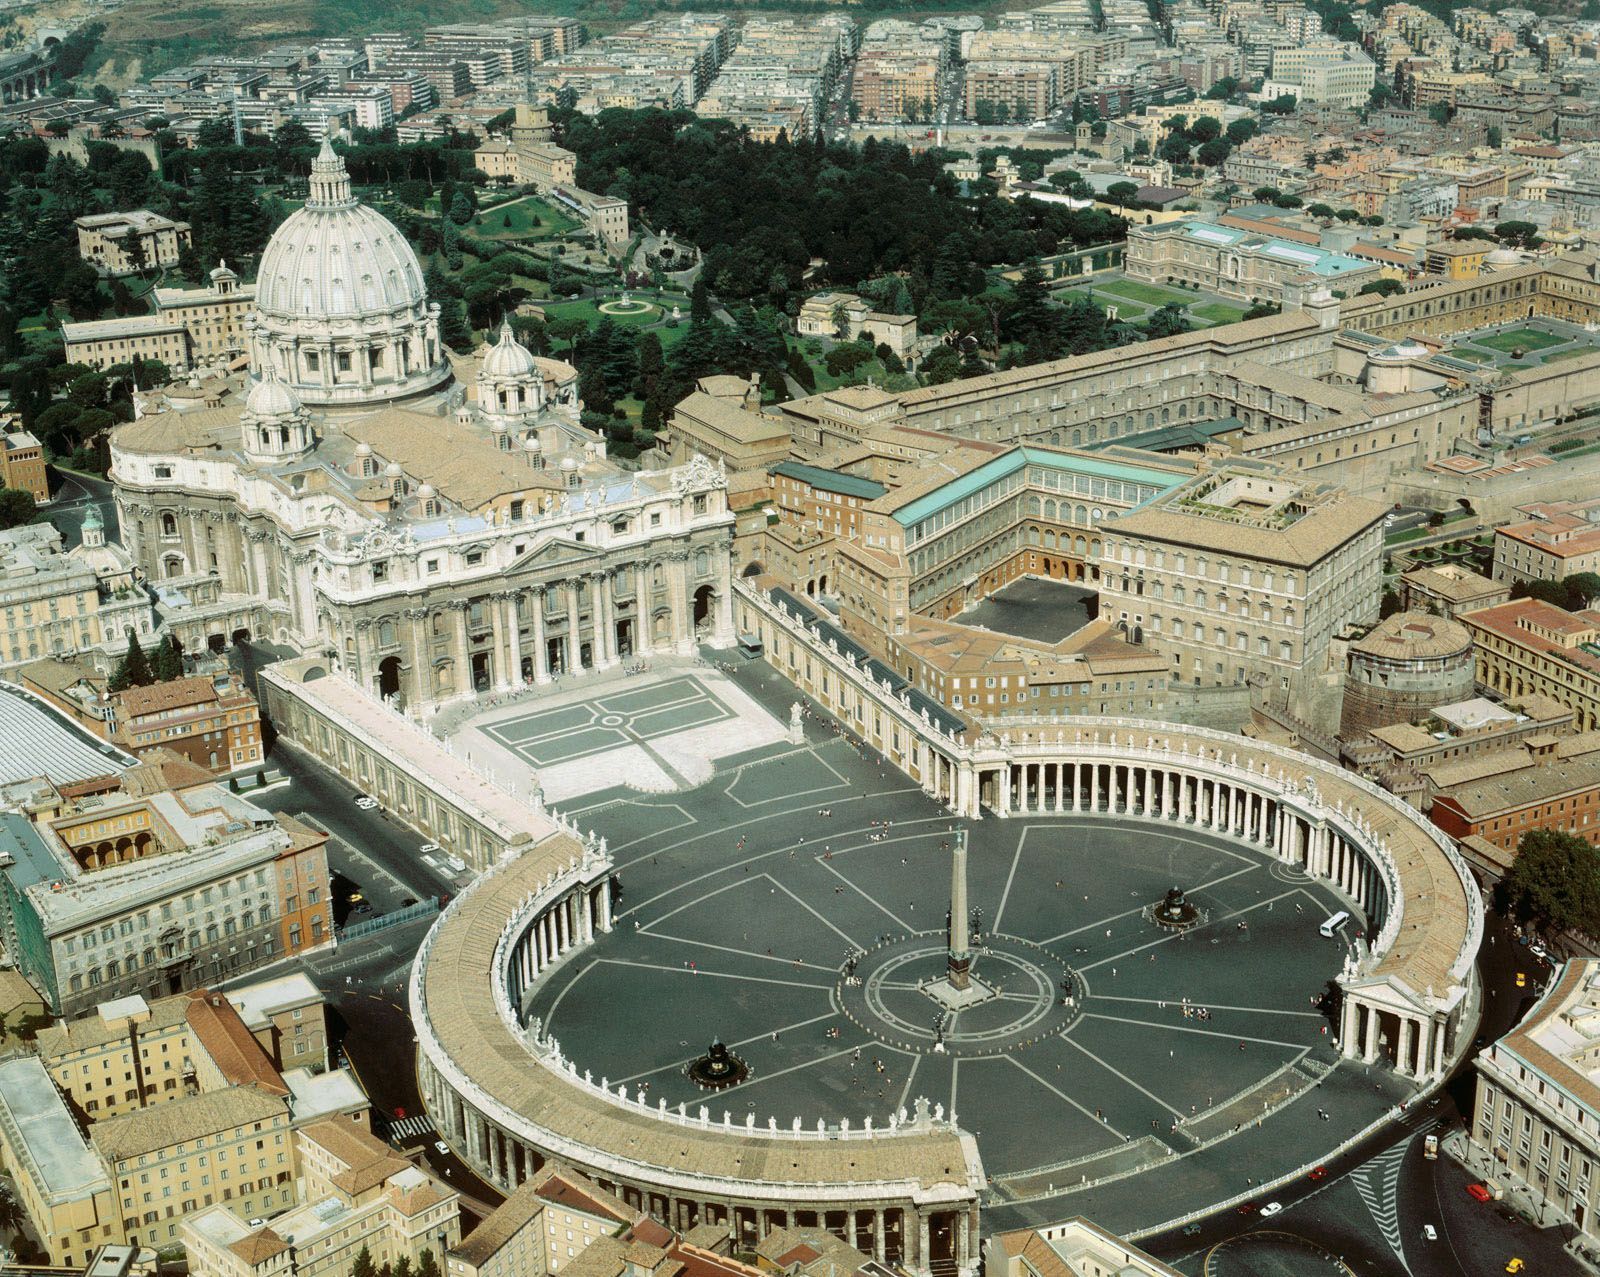 Inside Vatican City And The Renaissance Architecture Of The Holy See Idesignarch Interior Design Architecture Interior Decorating Emagazine St Peters Basilica Saint Peter Square Vatican